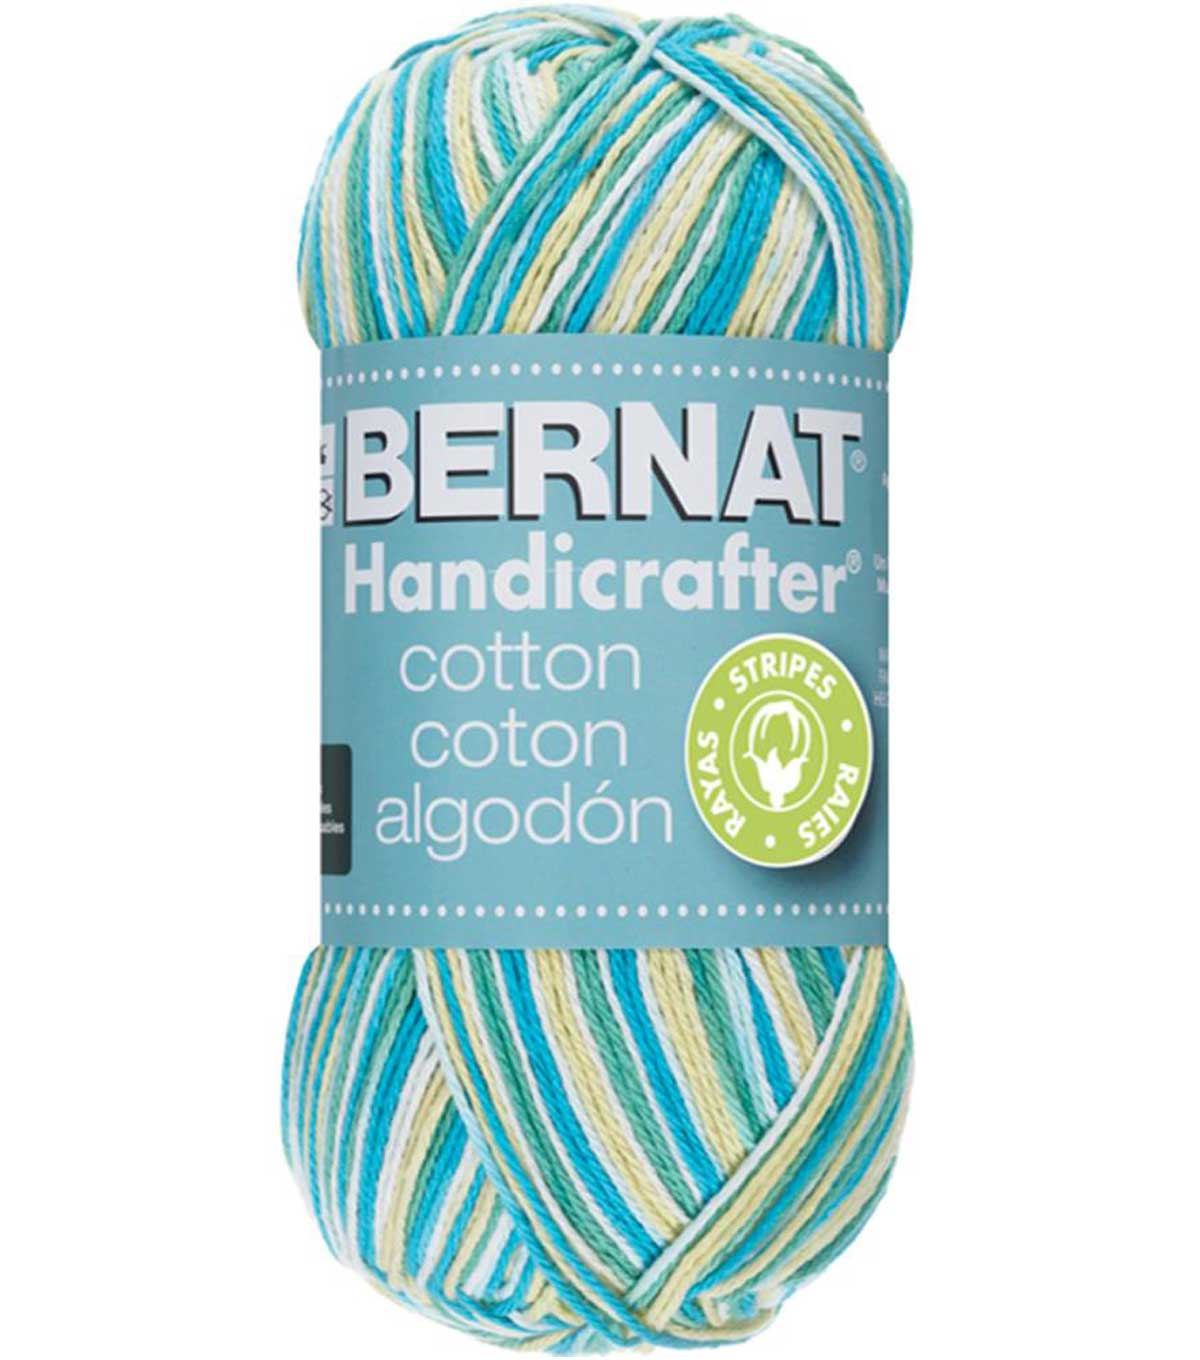 Bernat Handicrafter Striped Cotton Yarn 68 yds